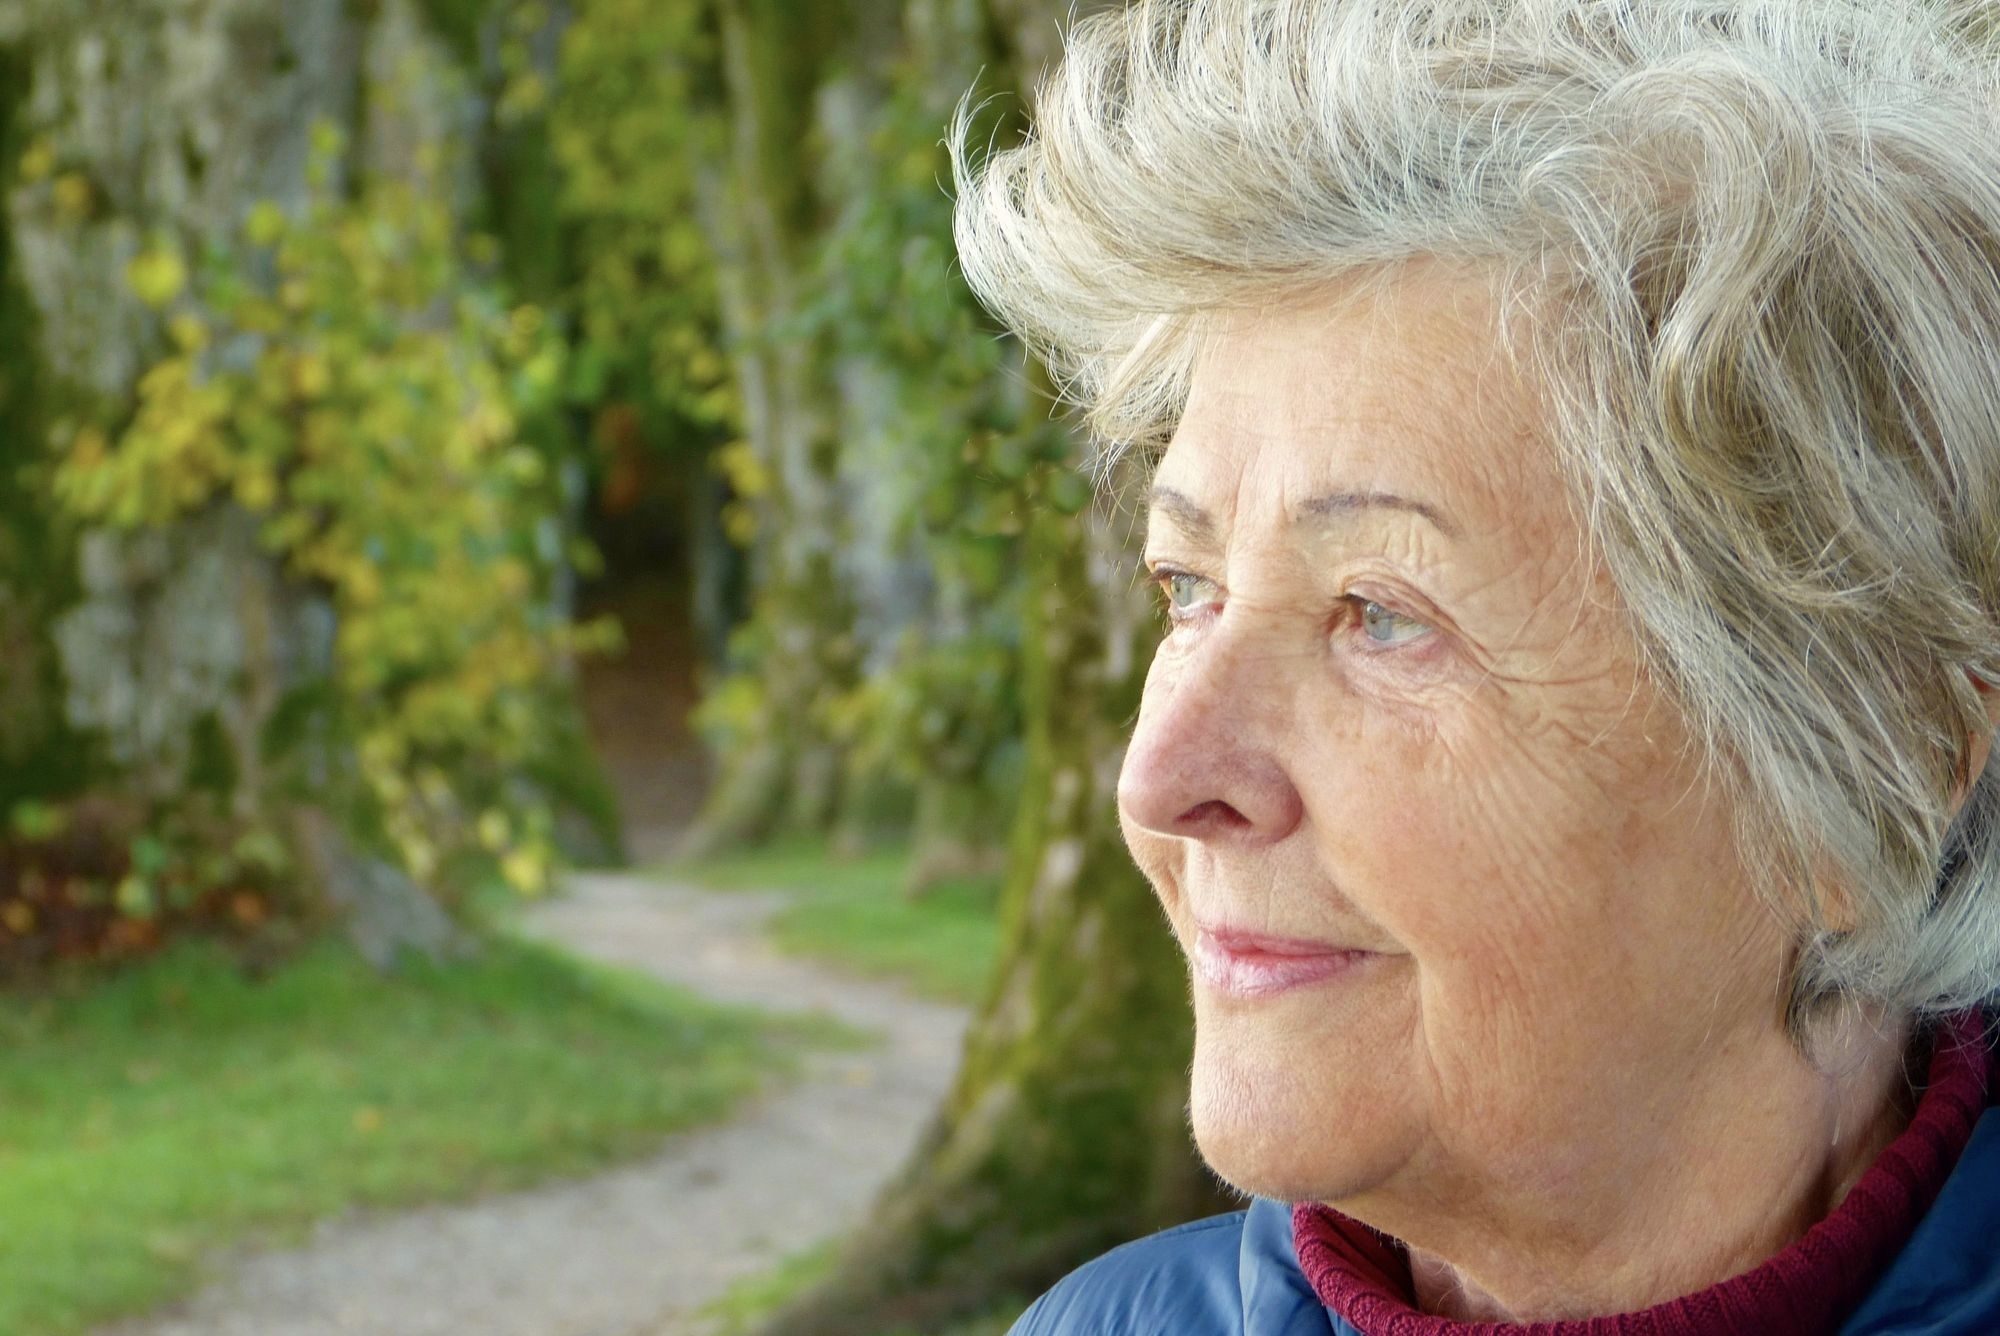 FINDING A GOOD PERSONAL CARE WORKER (Part 2) - What do I need to think of when looking for a personal care assistant?